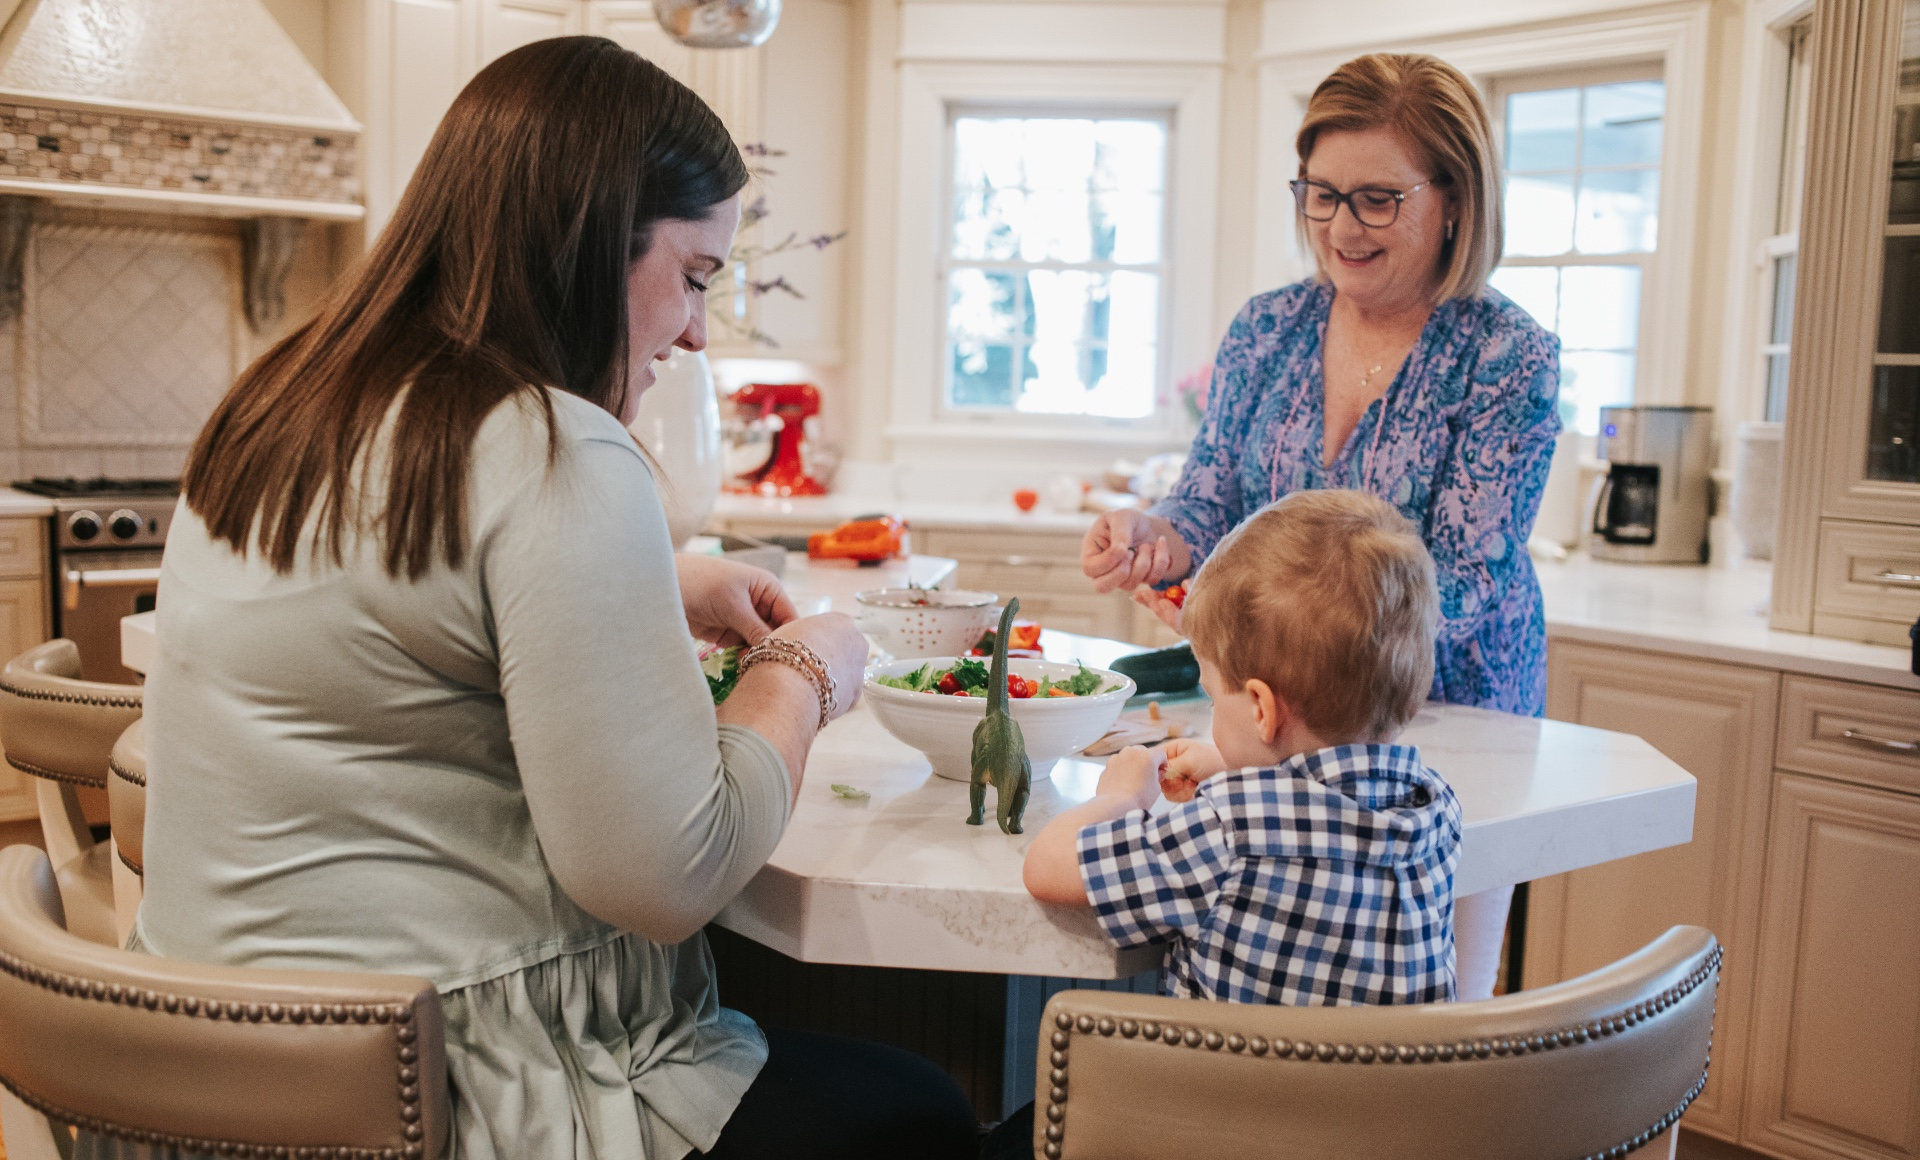 Nancy Johnson, an older white woman with blonde hair wearing a blue and pink print top, preps vegetables in her kitchen. With her is her grandson, a toddler in a blue, white and black checkered shirt, and her daughter, Kelsey, a younger white woman with brown hair, wearing a light green top.